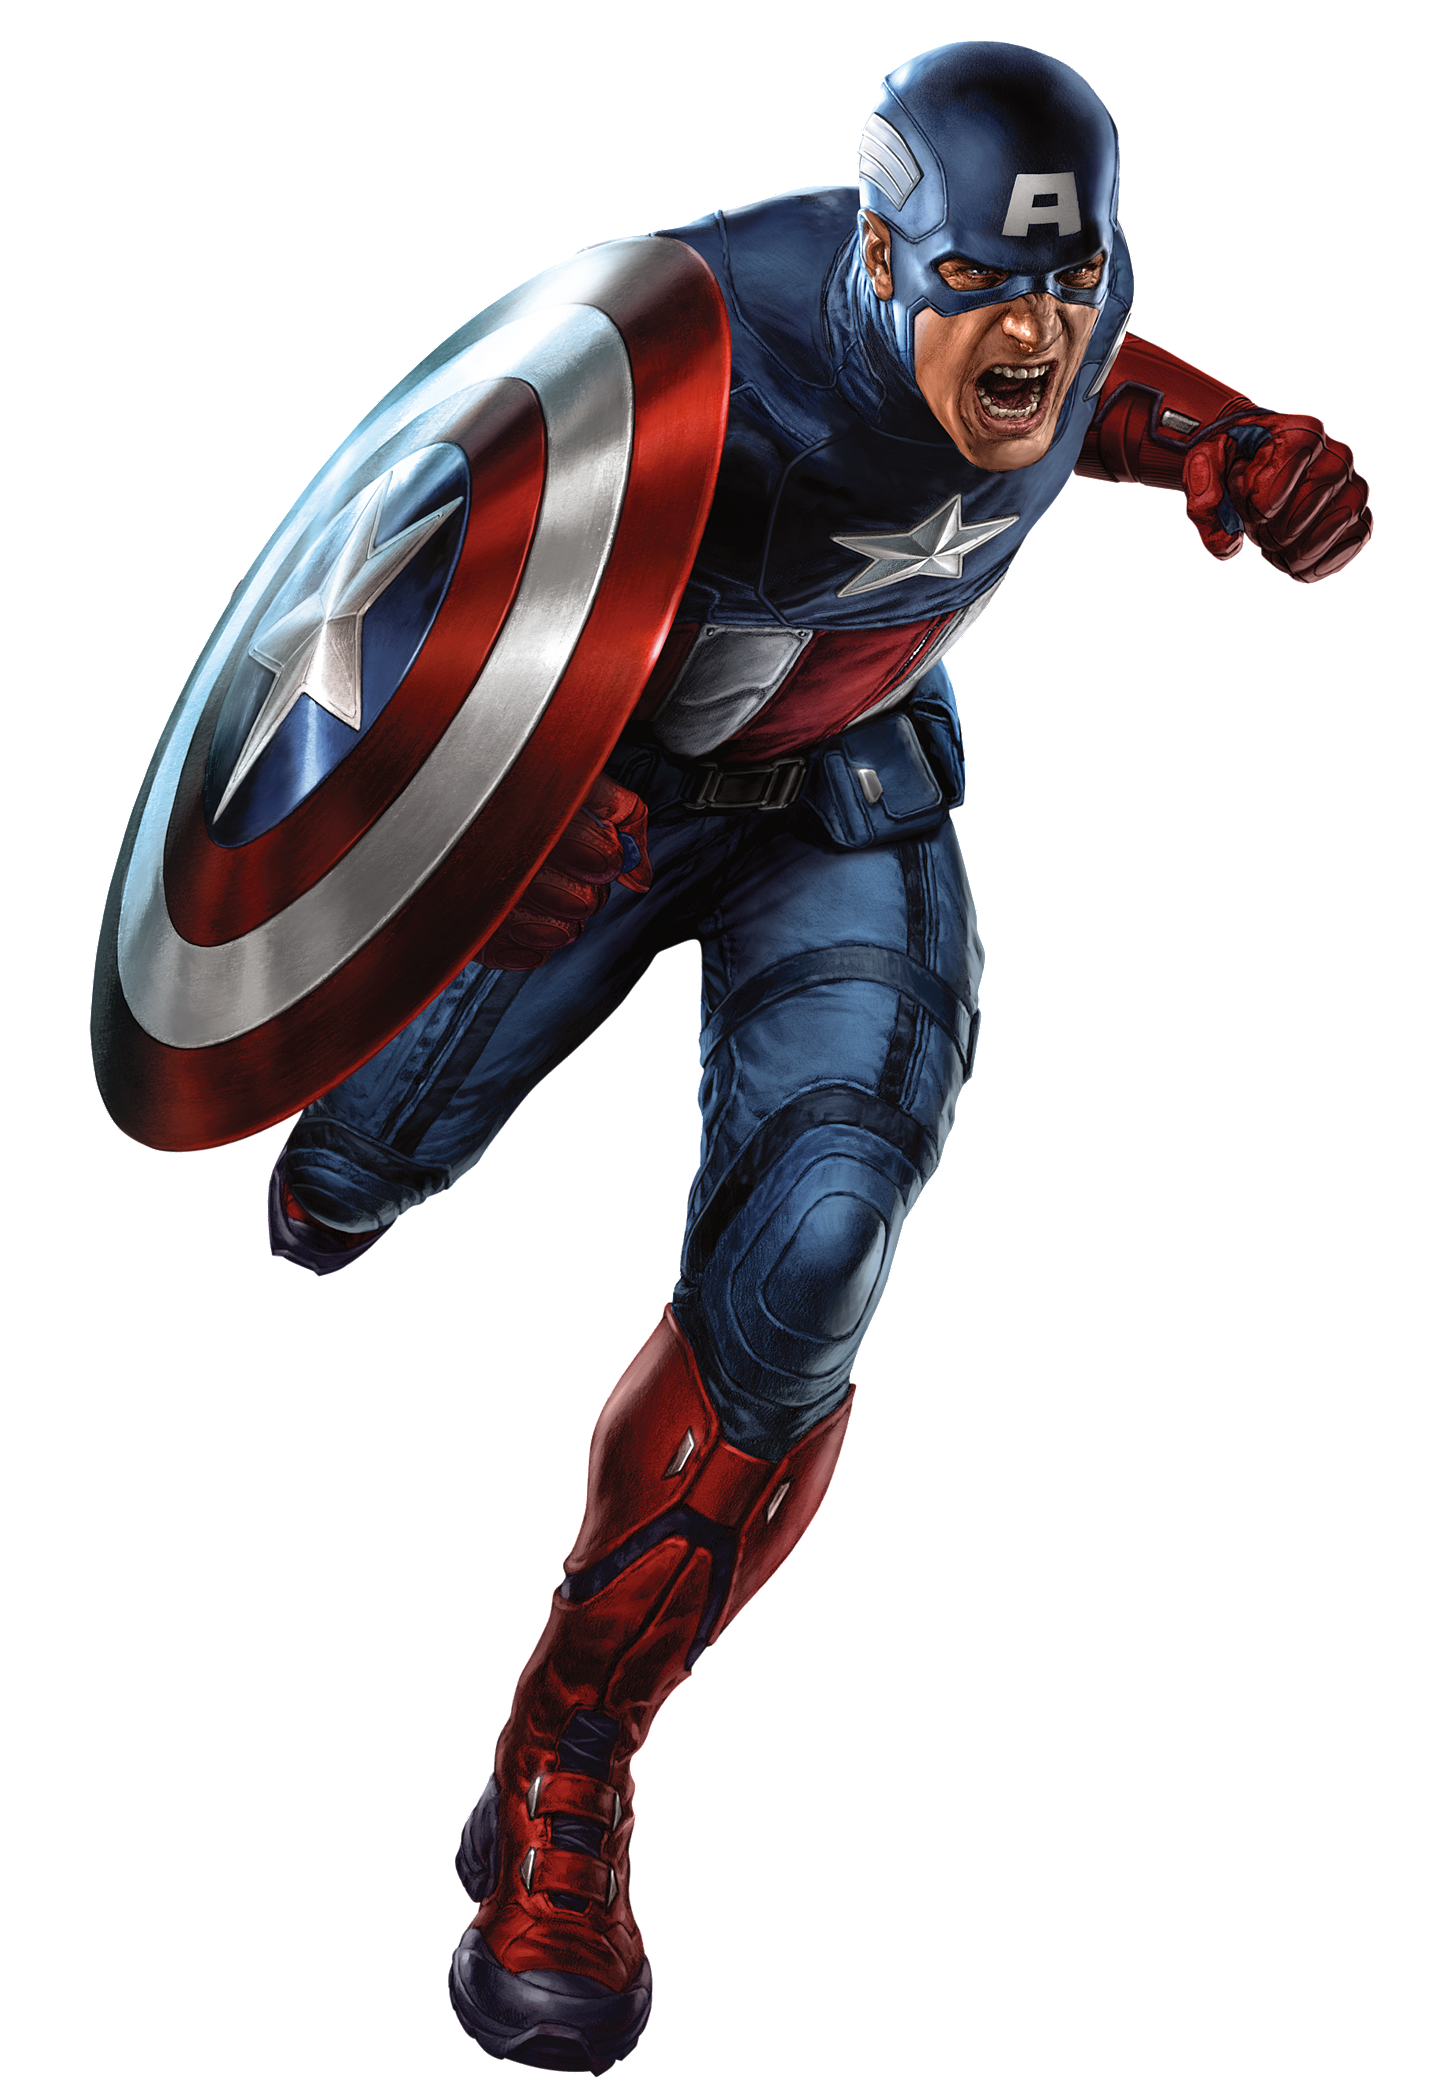 CaptainAmerica2-Avengers.png - Avengers HD PNG - Captian America HD PNG